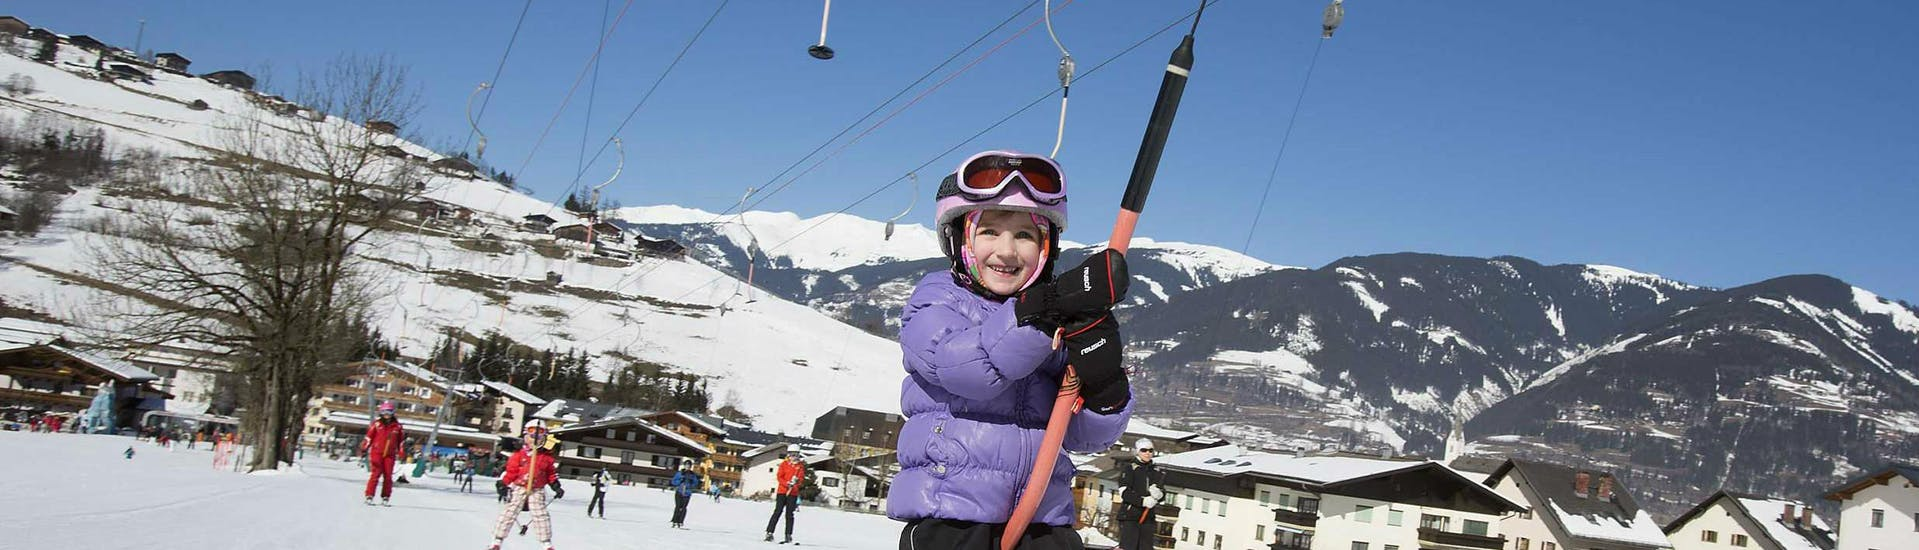 Private Ski Lessons for Teens of All Levels